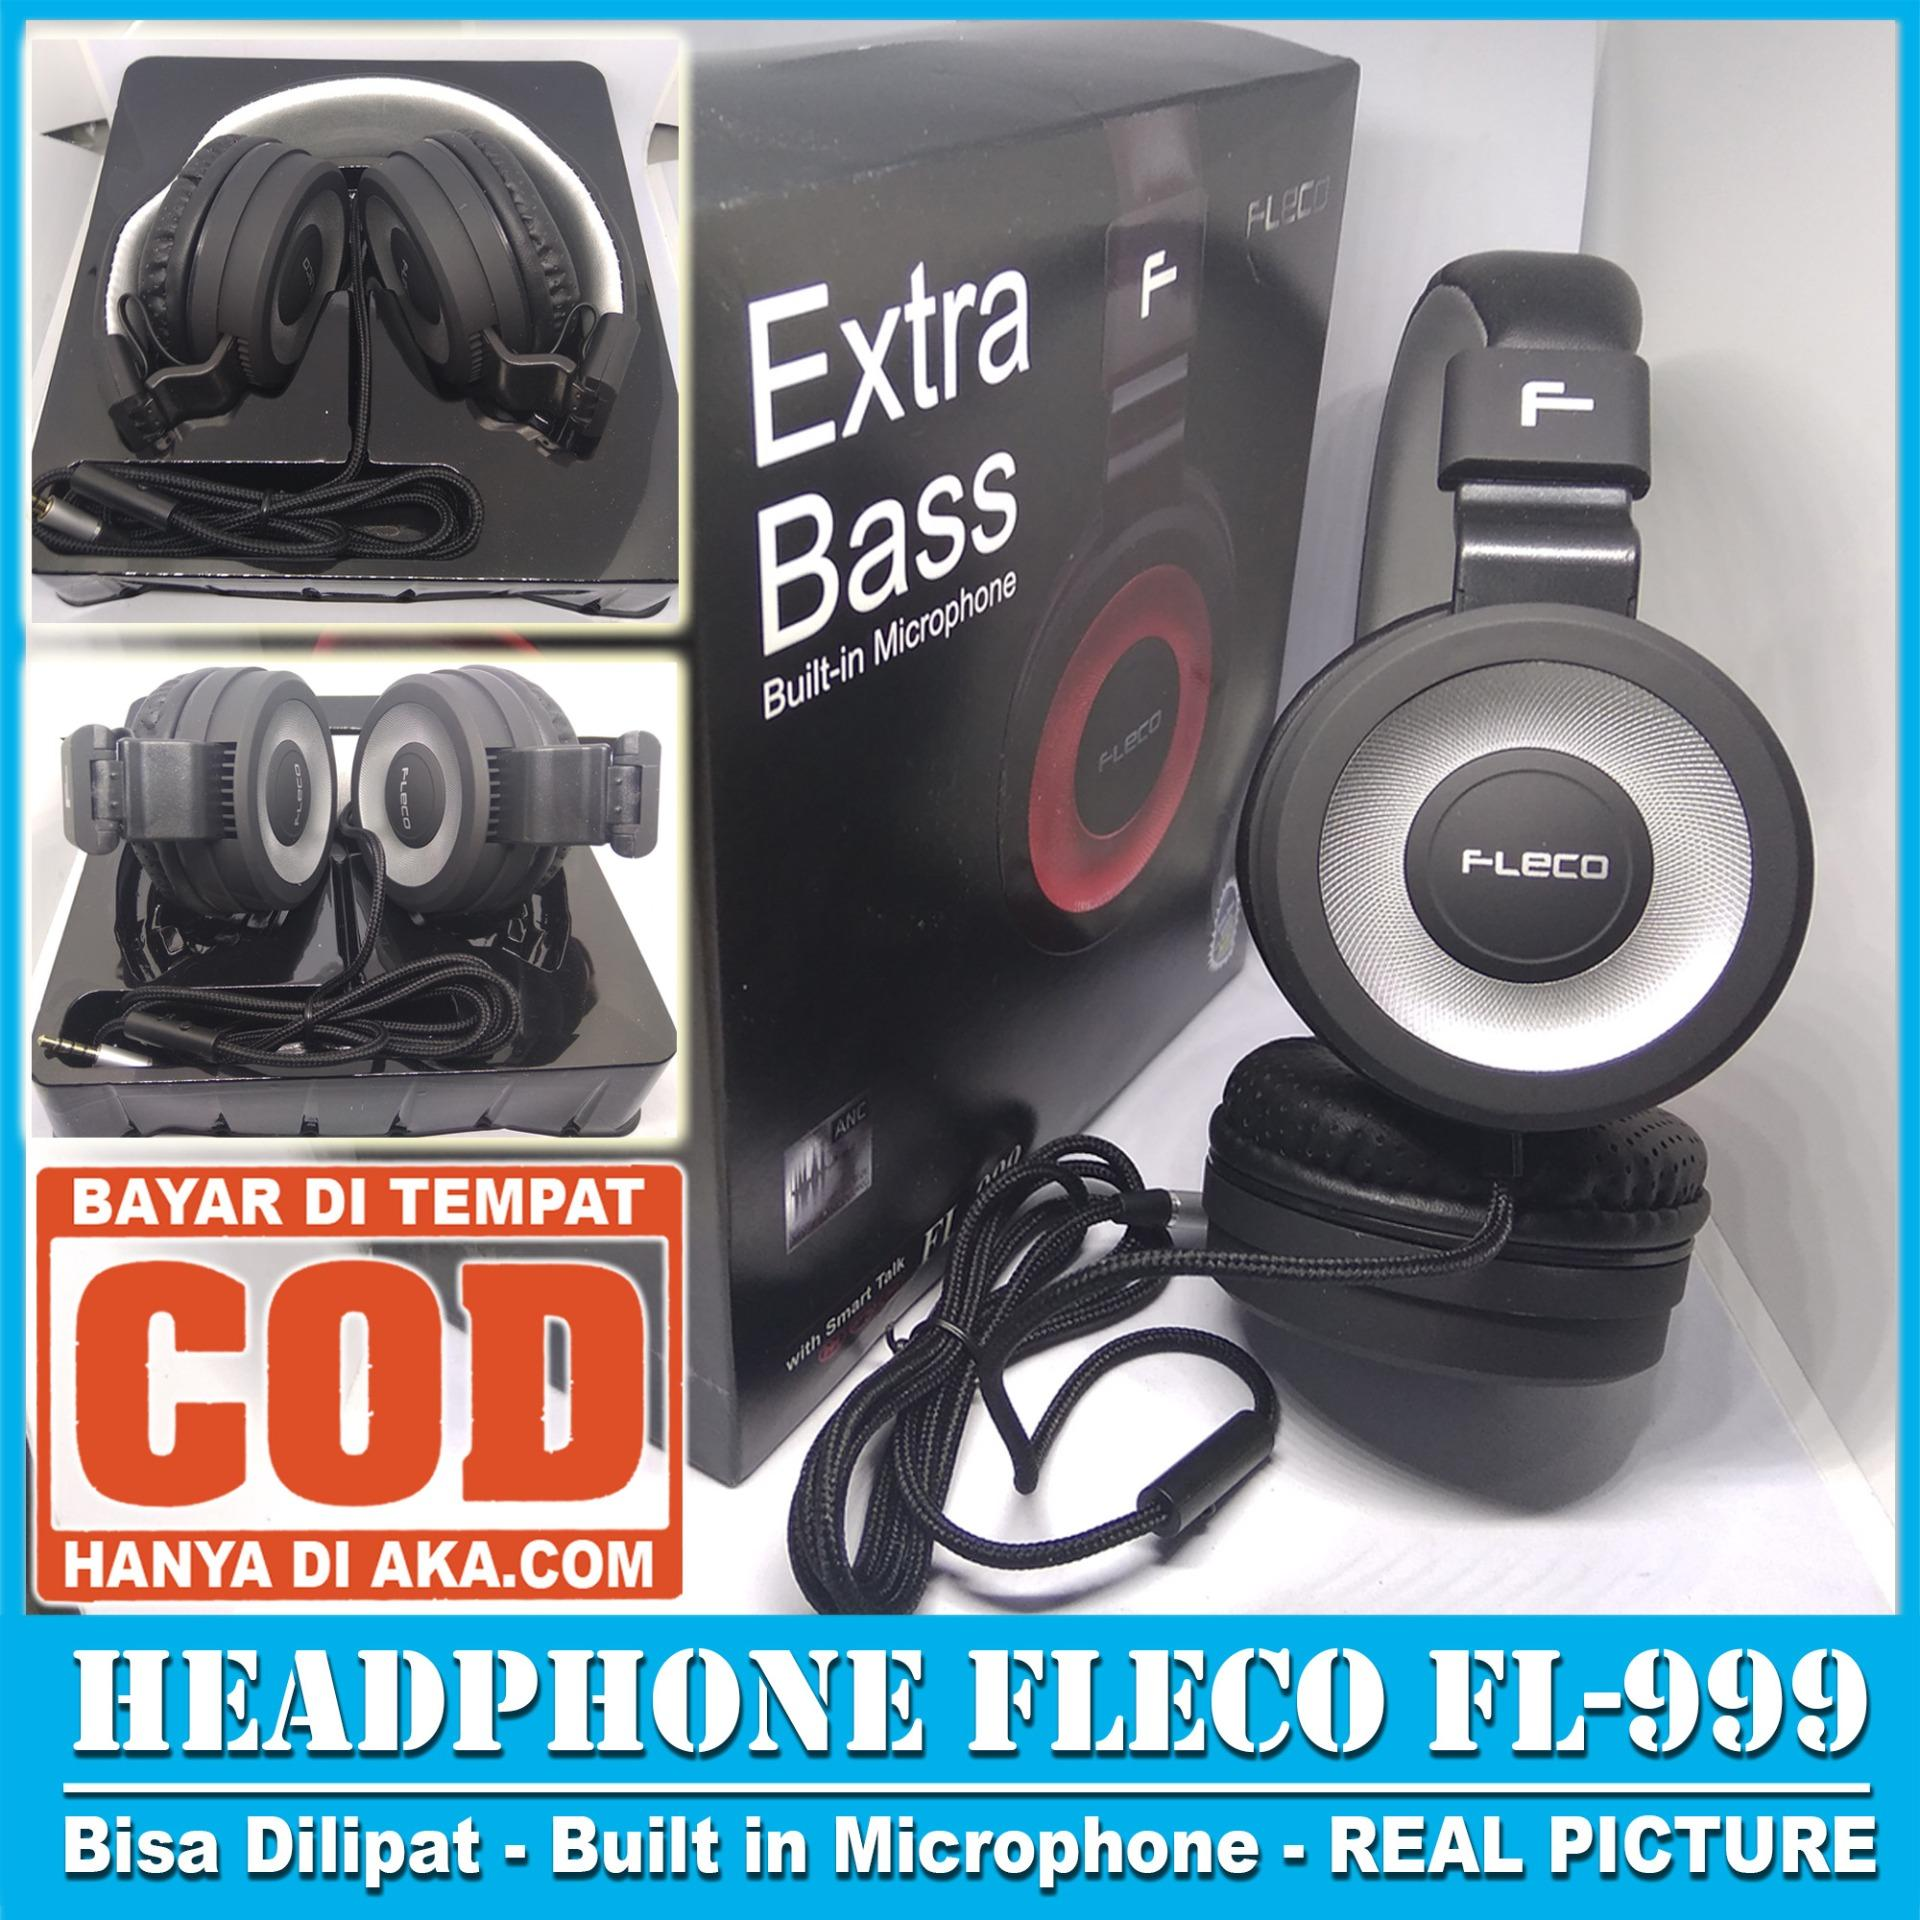 Fleco Original Super Bass Stereo Headset Handsfree Headphone Withmic Earphones Sumo Er 1 Sport Metal Music With Microphone Er1 Dijamin Nendang New Ready Stok Fl 999 Extra Hifi Built In Earphone Real